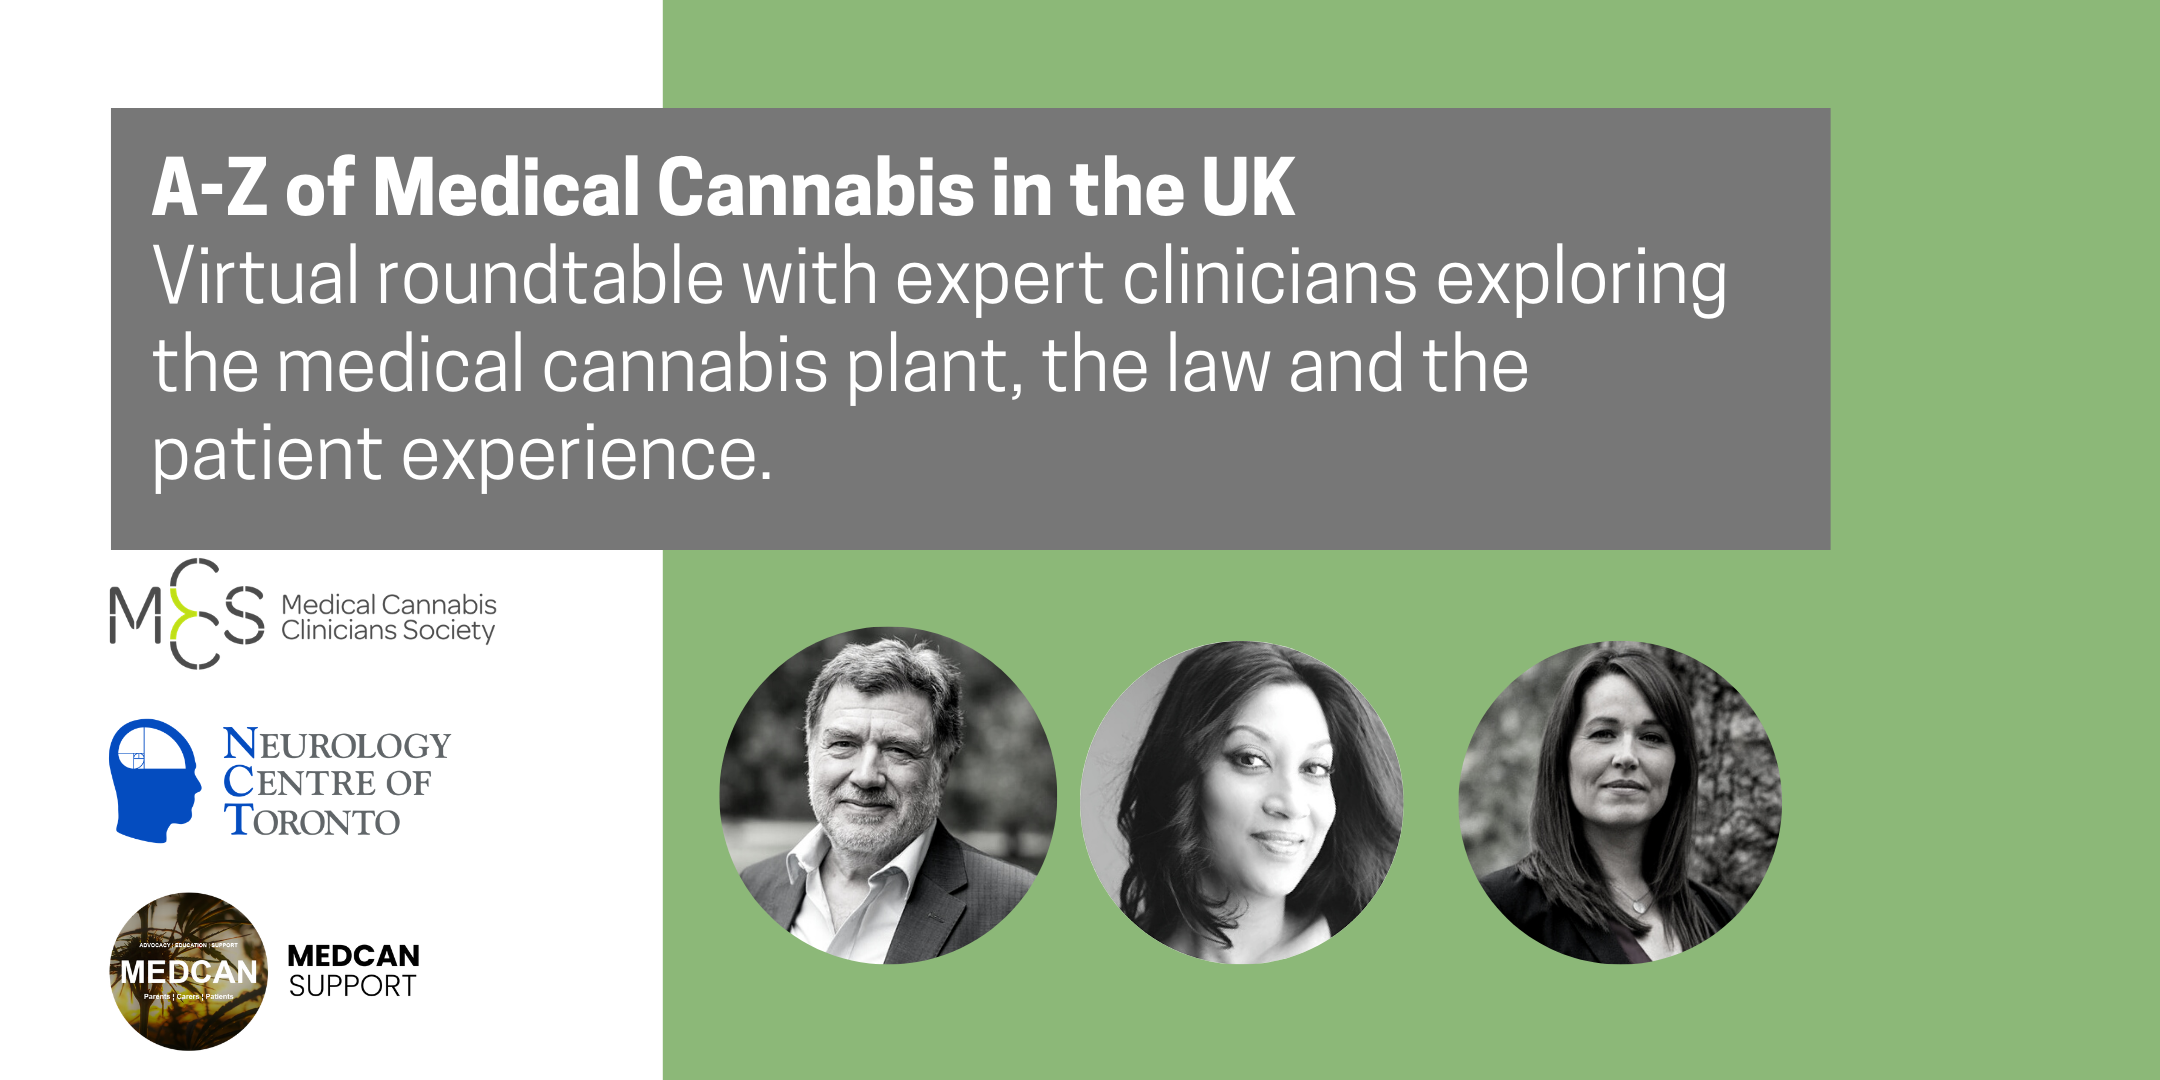 A-Z of Medical Cannabis in the UK